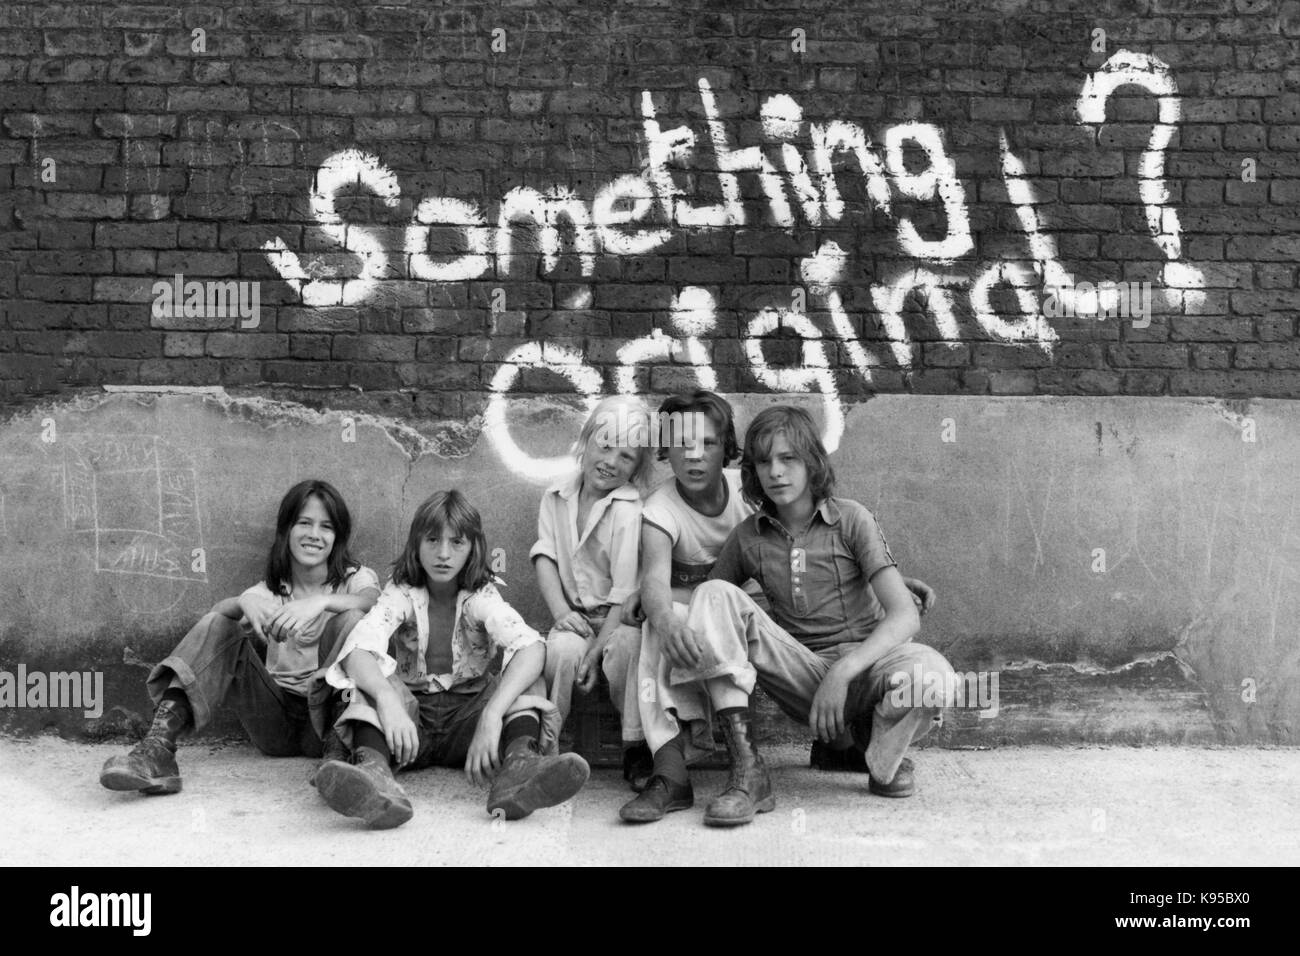 Street Boys Against a Wall of Graffiti - Something Original - 1976 - Stock Image